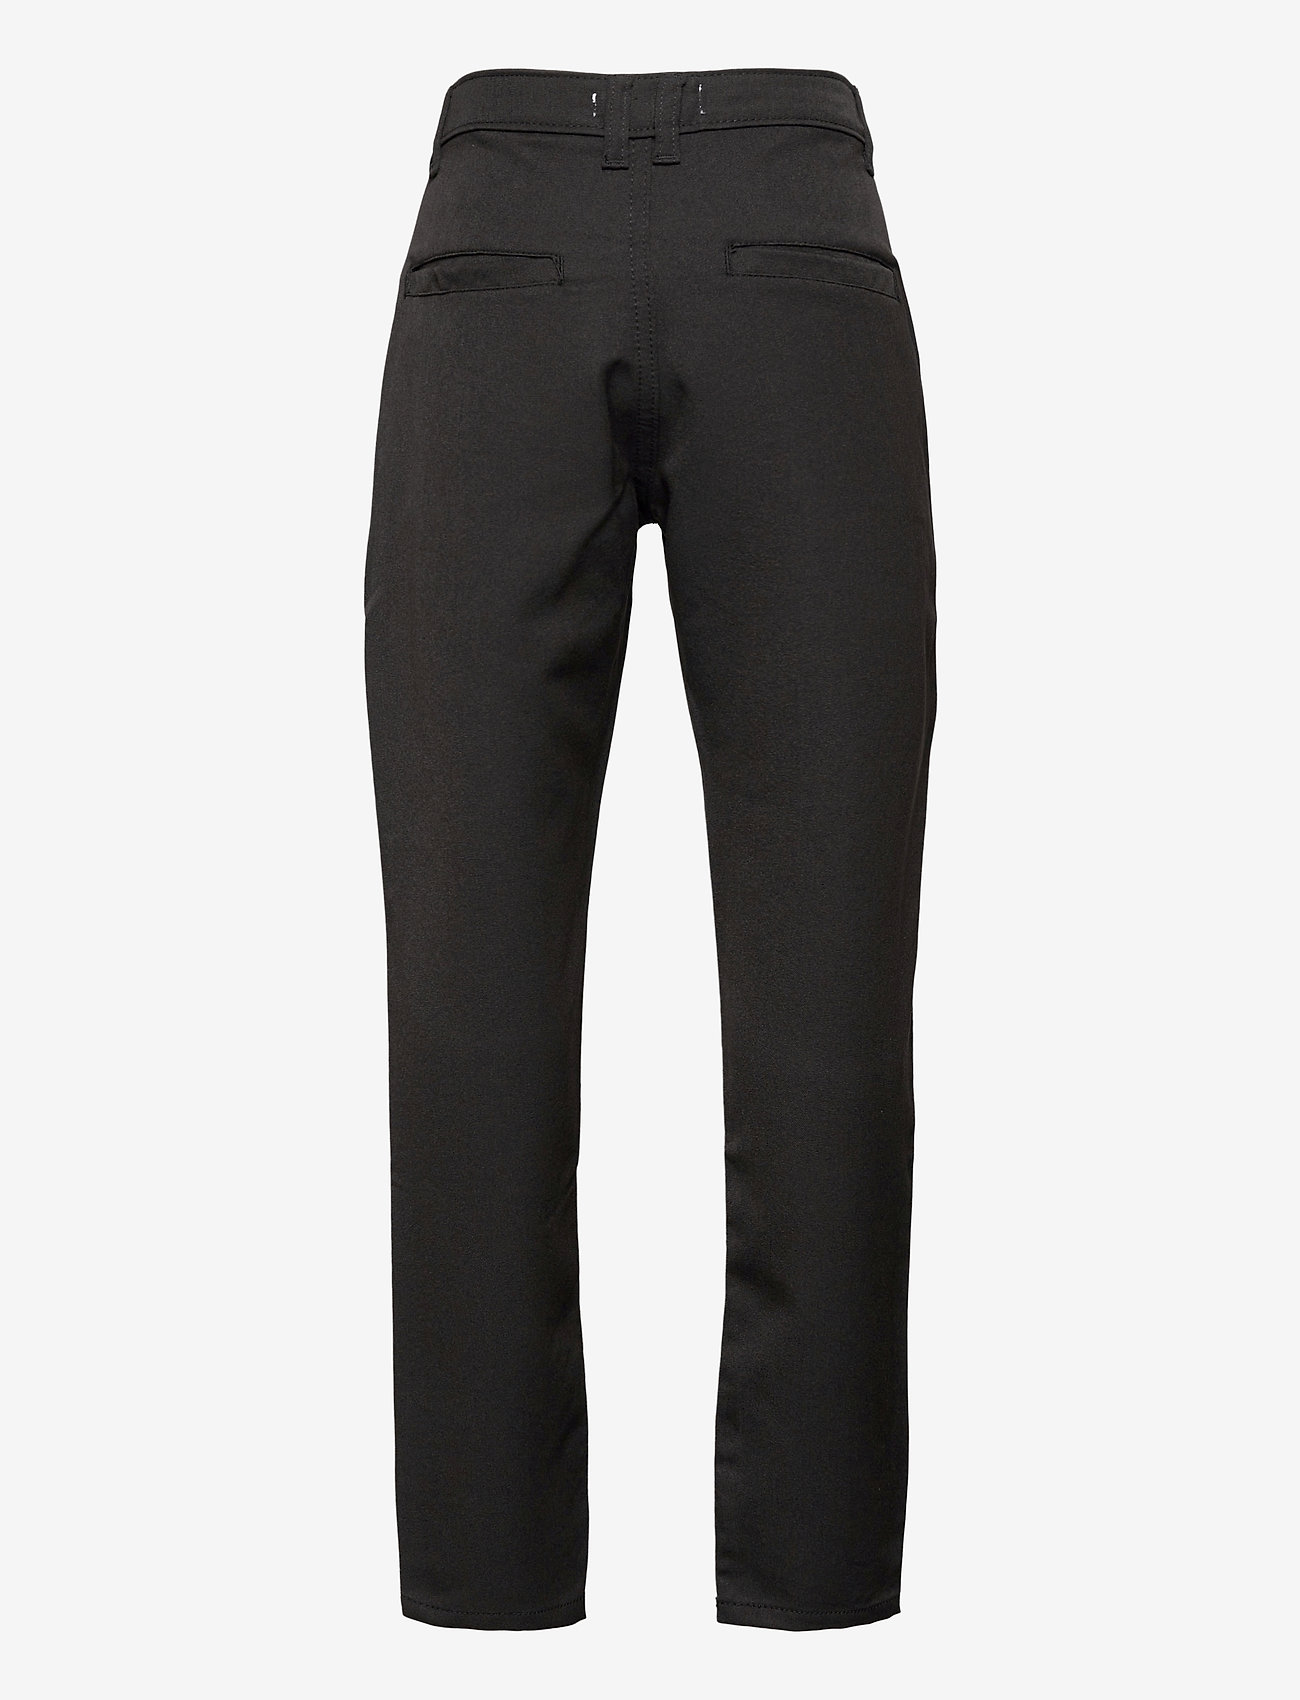 Costbart - CHRIS CHINO PANT - trousers - black - 1